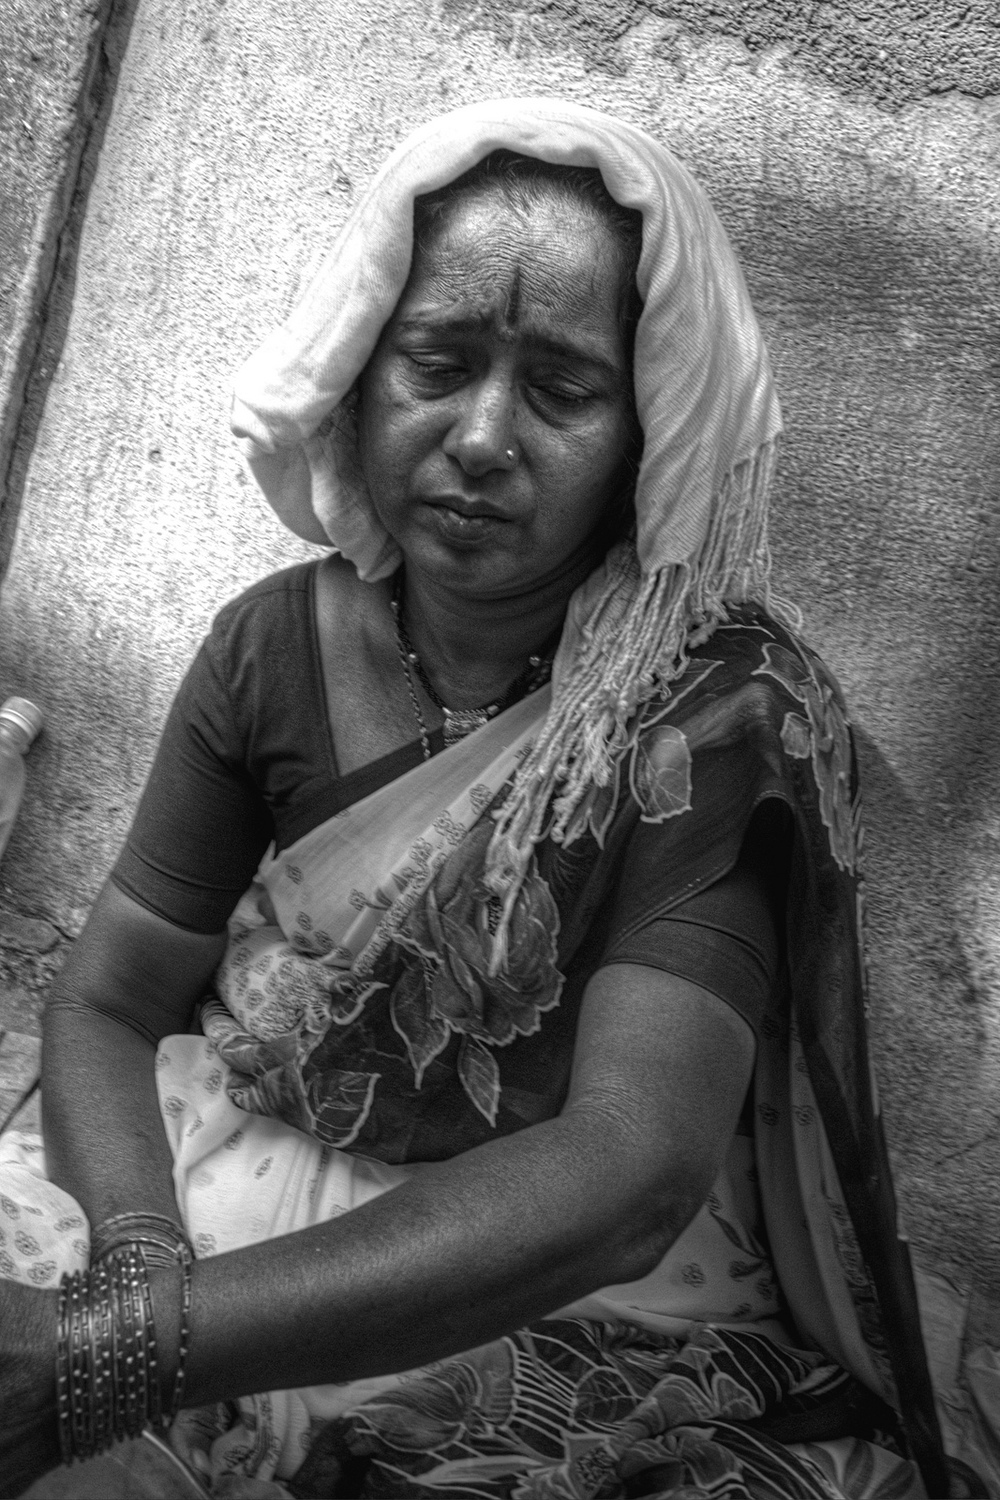 Sad woman in Mumbai, India